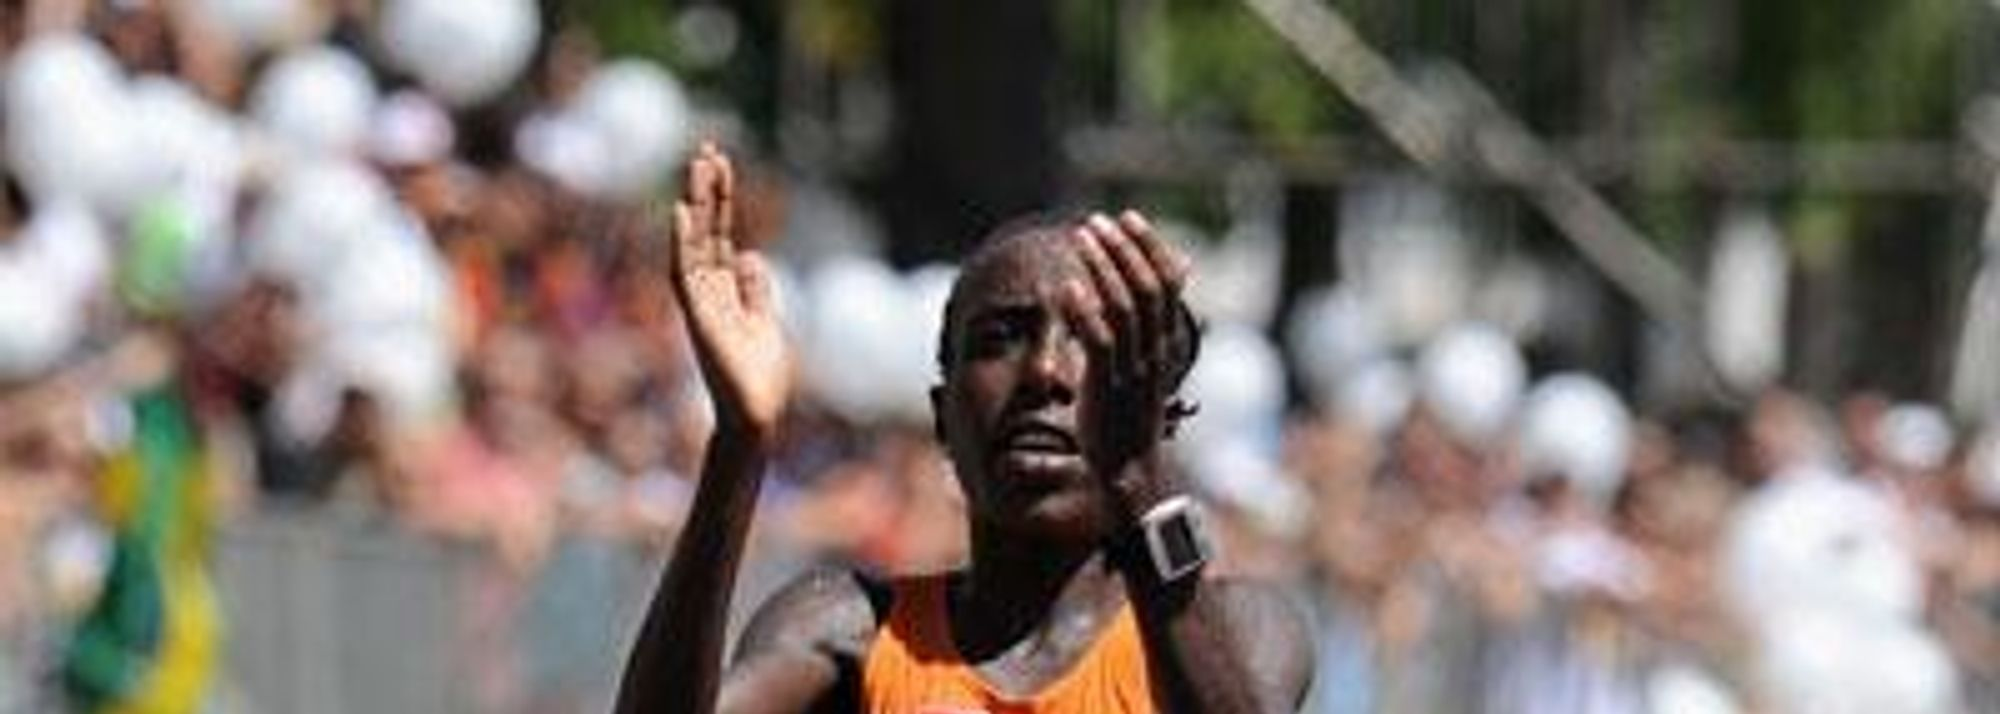 - Lornah Kiplagat producing another&nbsp;staggering performance&nbsp; in perfect conditions retained her global road running title for the second time at today's IAAF / CAIXA World Half Marathon Championships with a runaway victory on a course that stretched along the coastline of this wonderful city.</P>